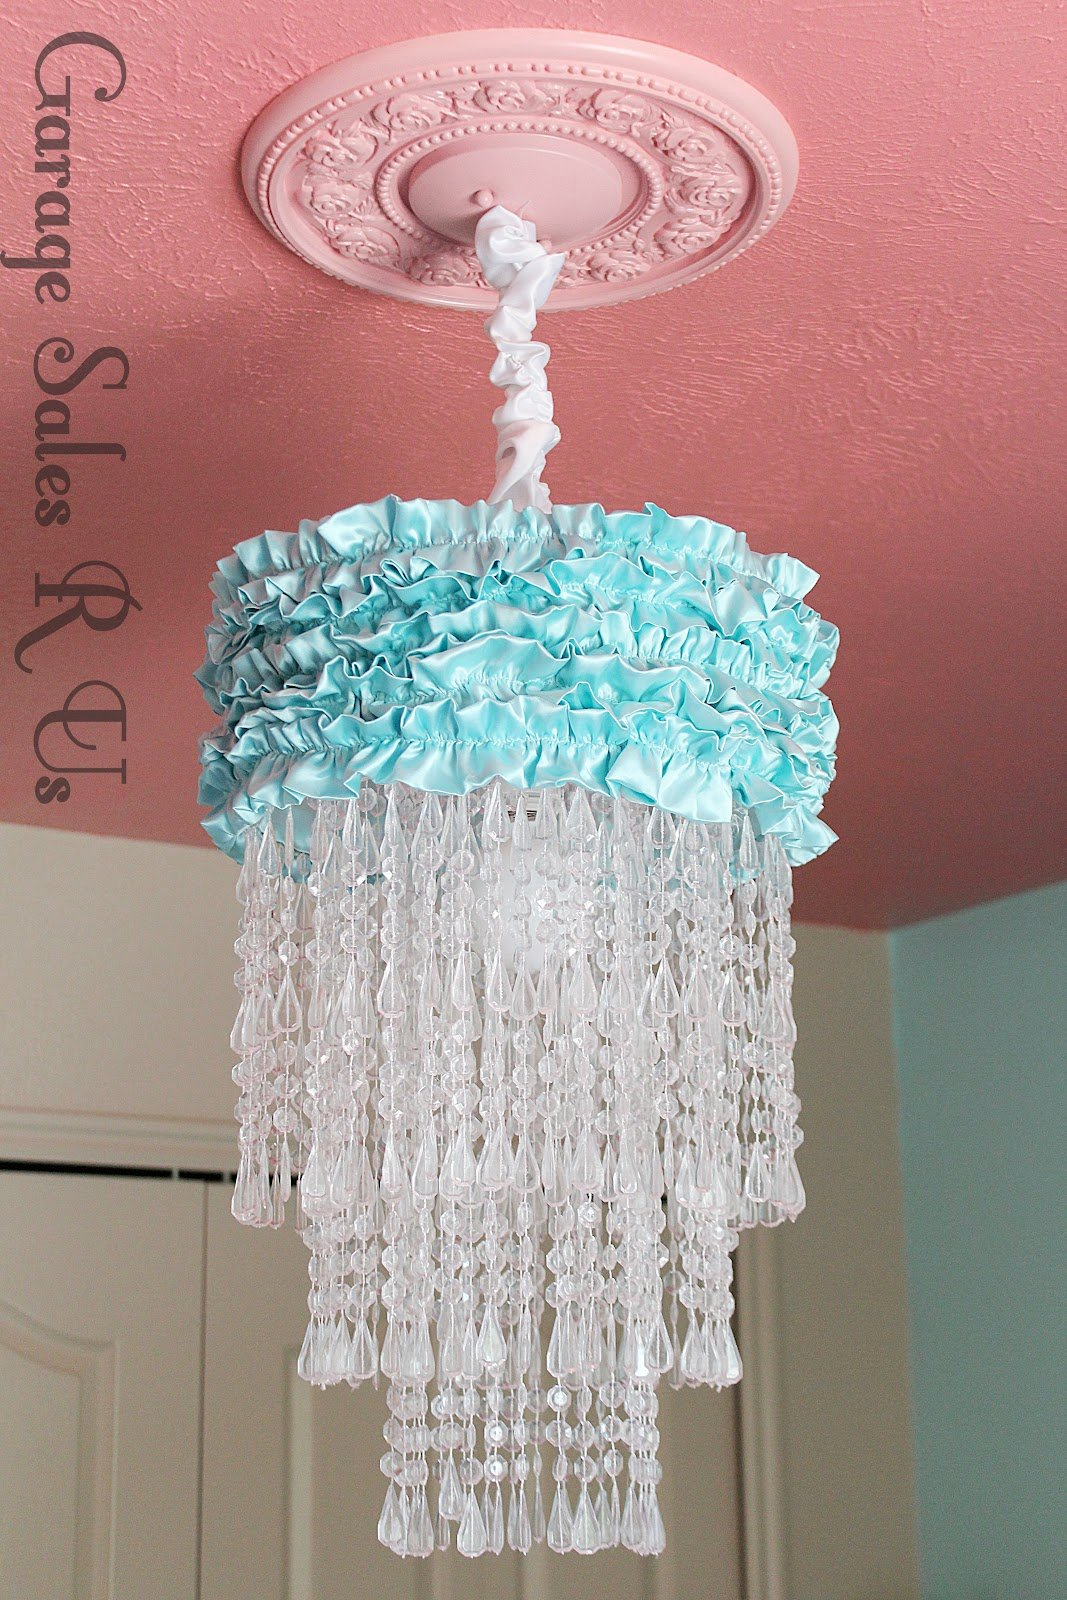 25 diy chandelier ideas make it and love it bead and ruffle chandelier by garage sales r us 5 arubaitofo Gallery